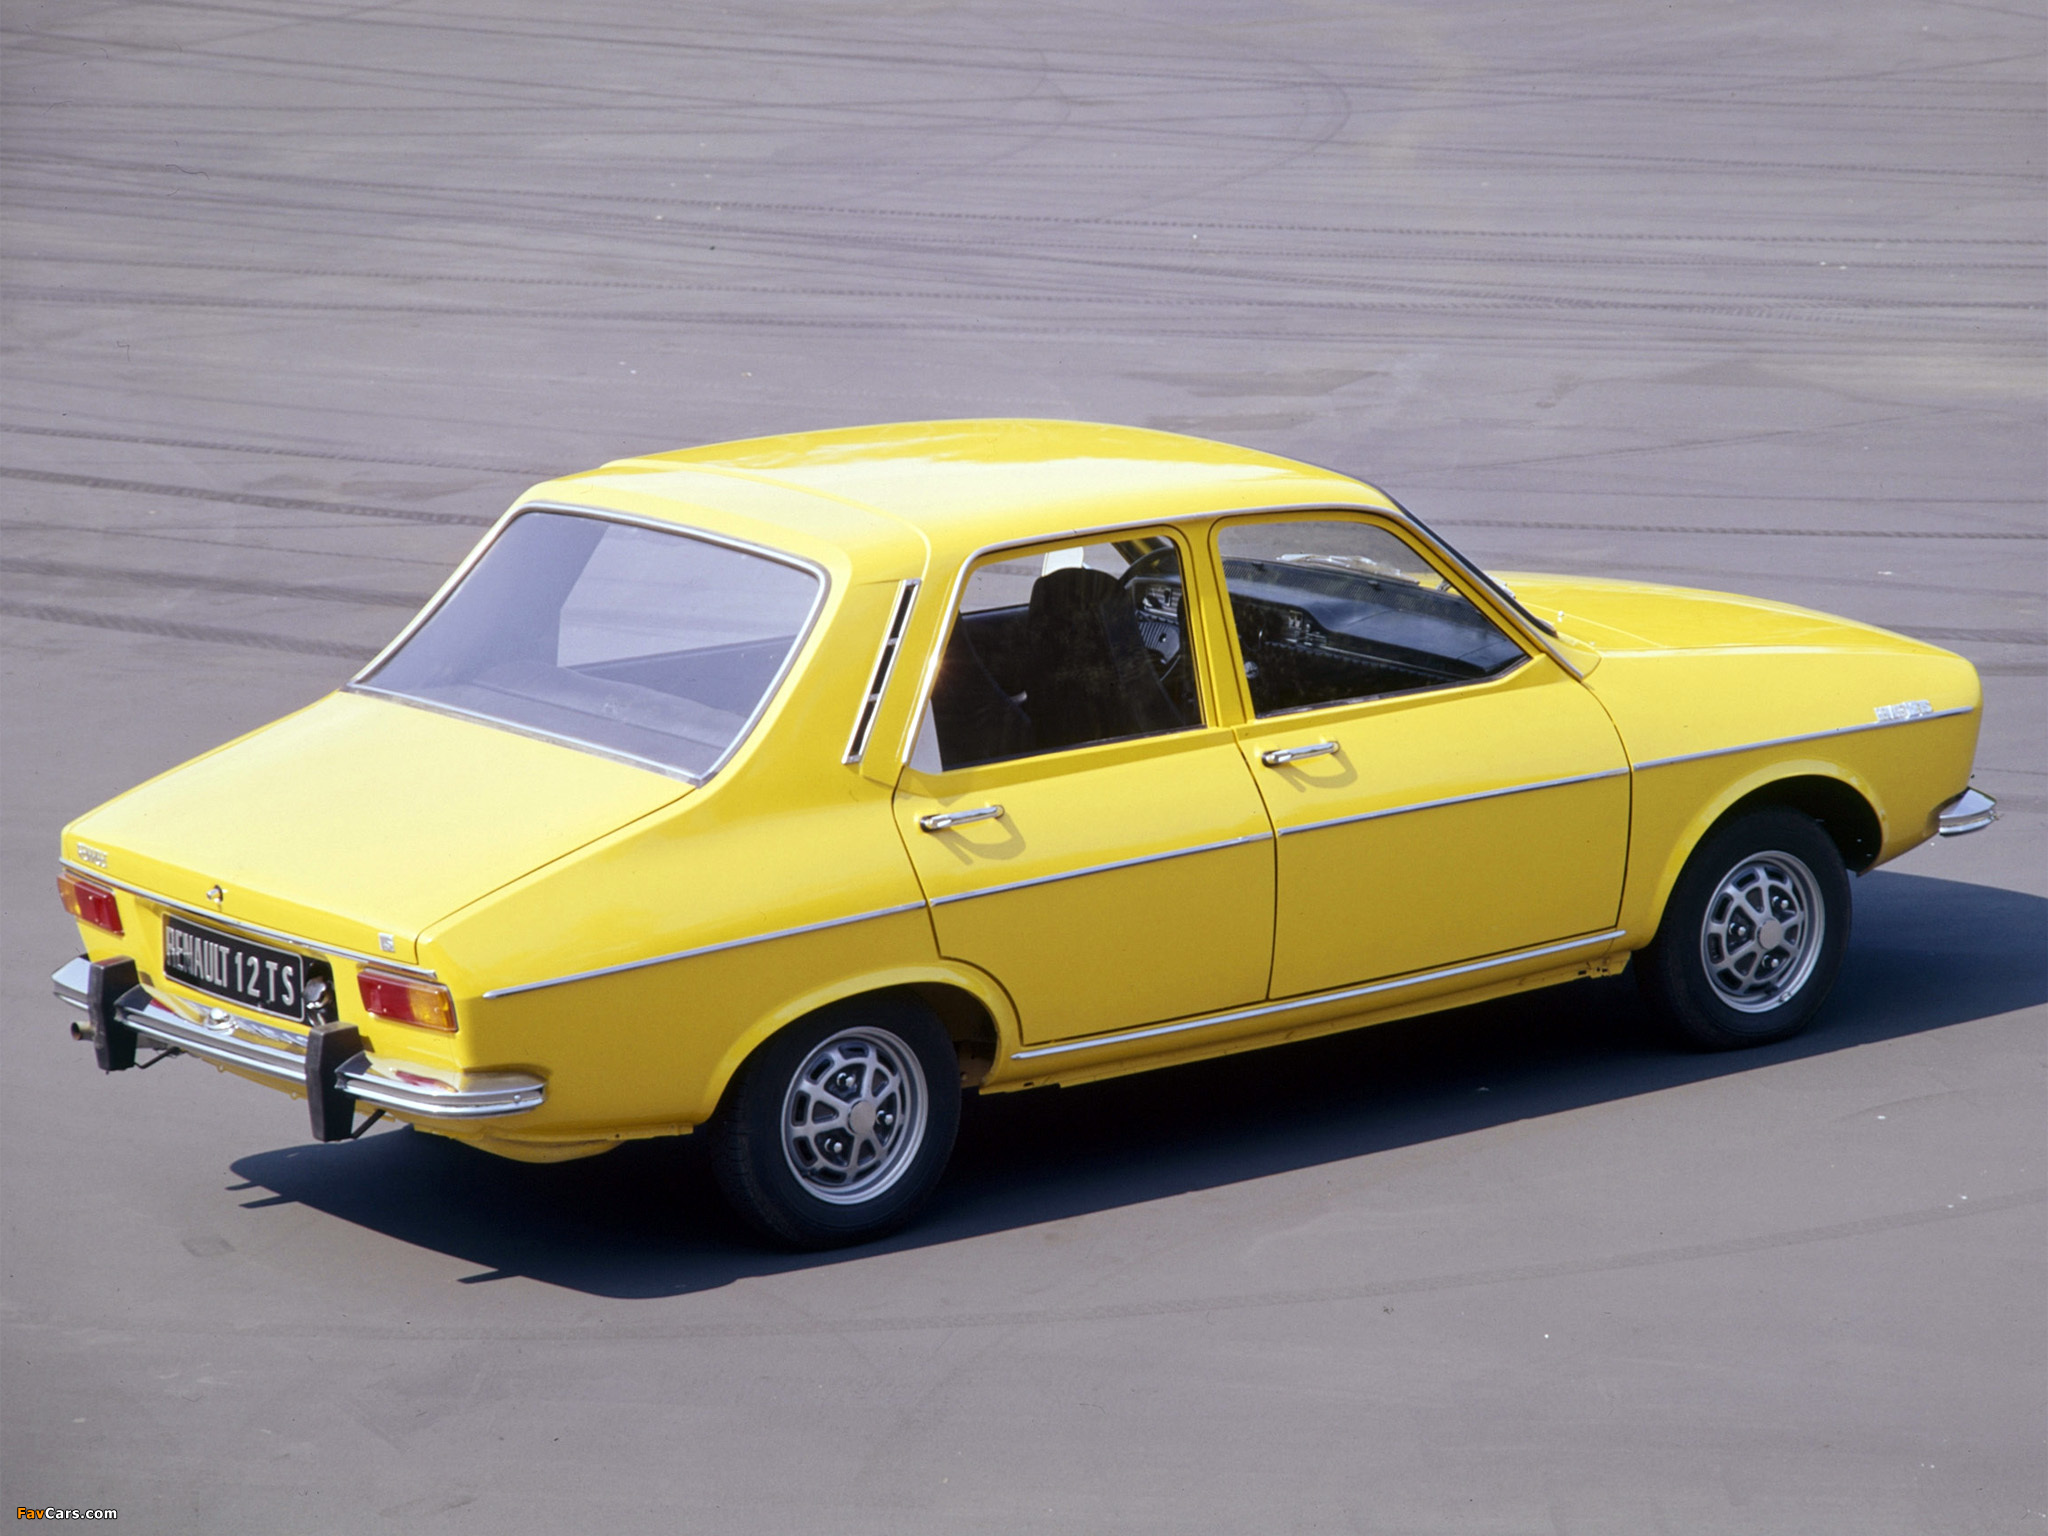 2048x1536 Car Wallpapers Pictures Of Renault 12 Ts 1972 75 2048x1536